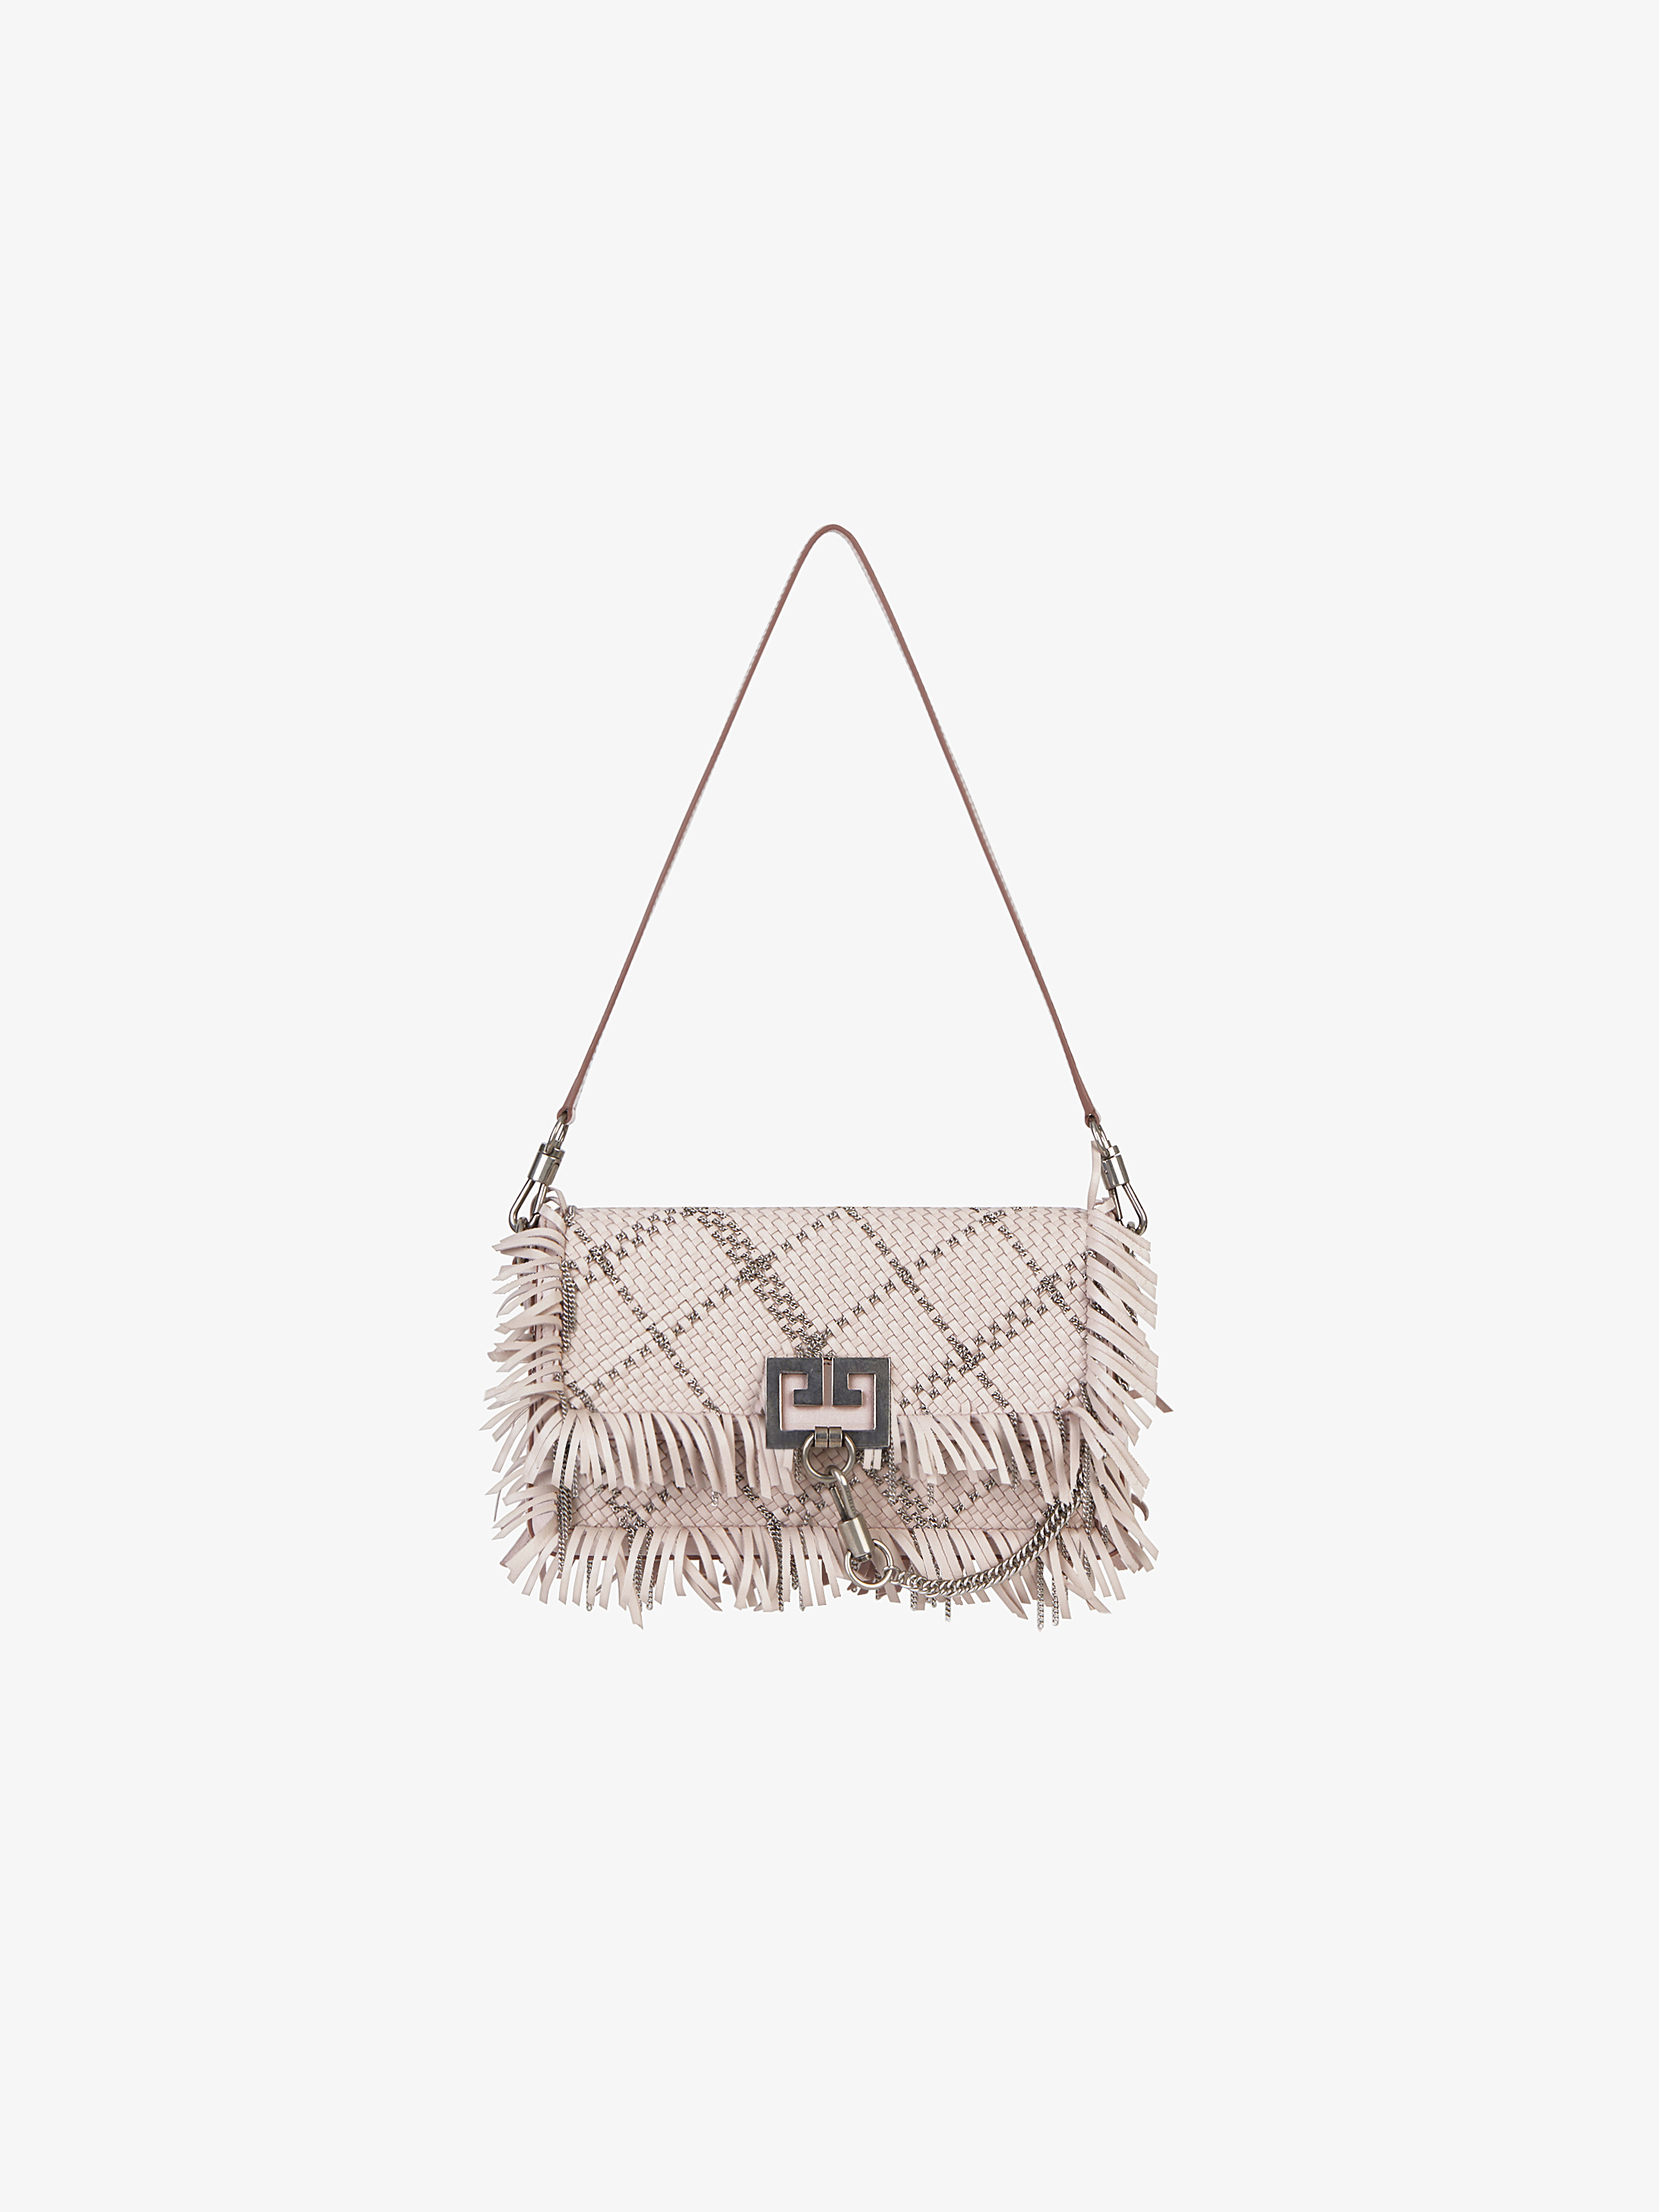 Fringed Charm bag in braided leather and chain